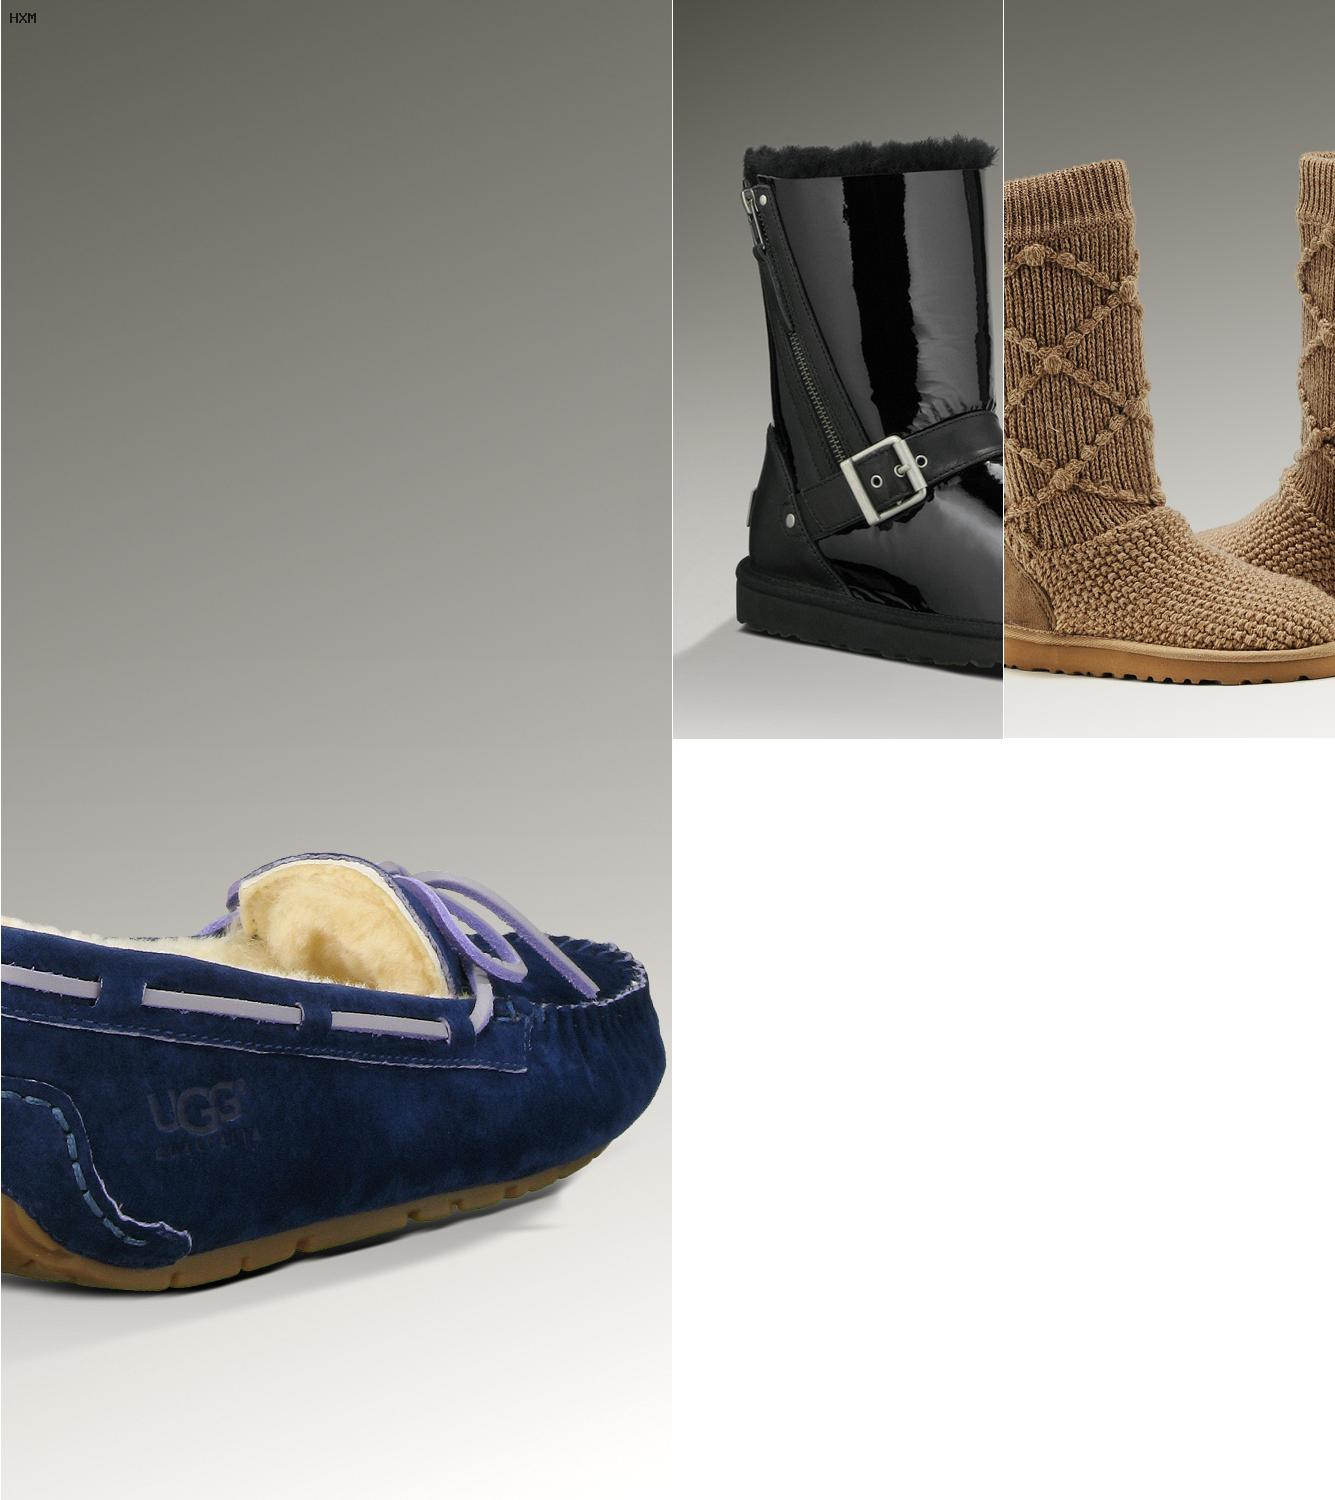 official ugg store amsterdam